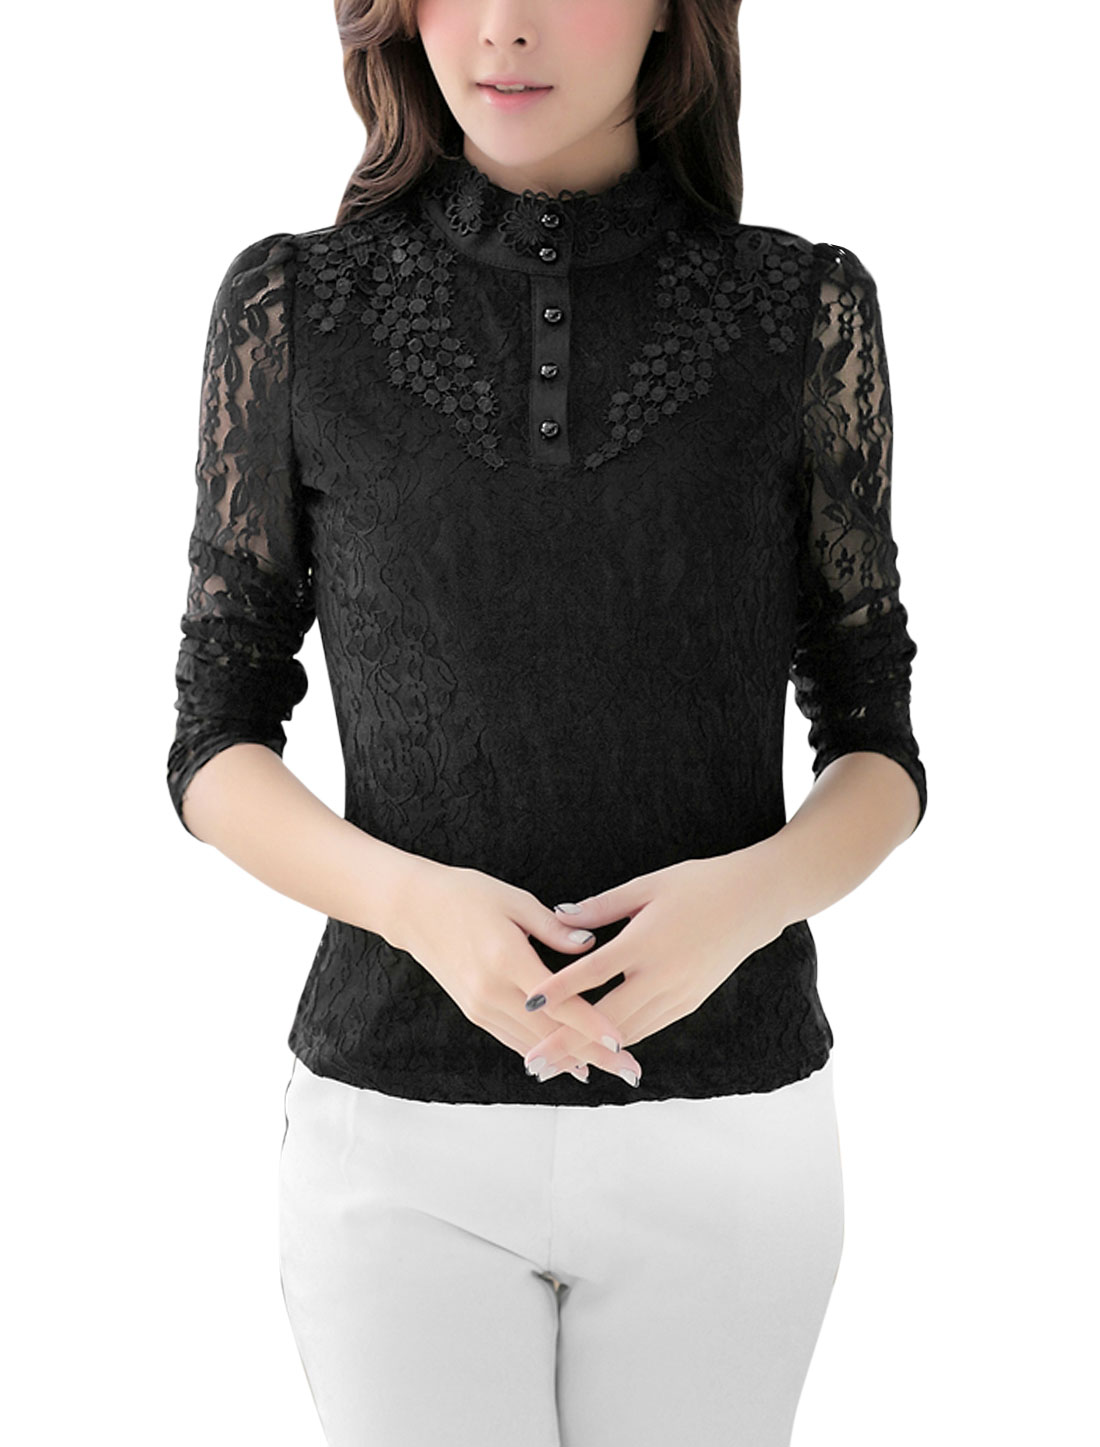 Women Stand Collar Crochet Flower Decor Lace Shirt Black L